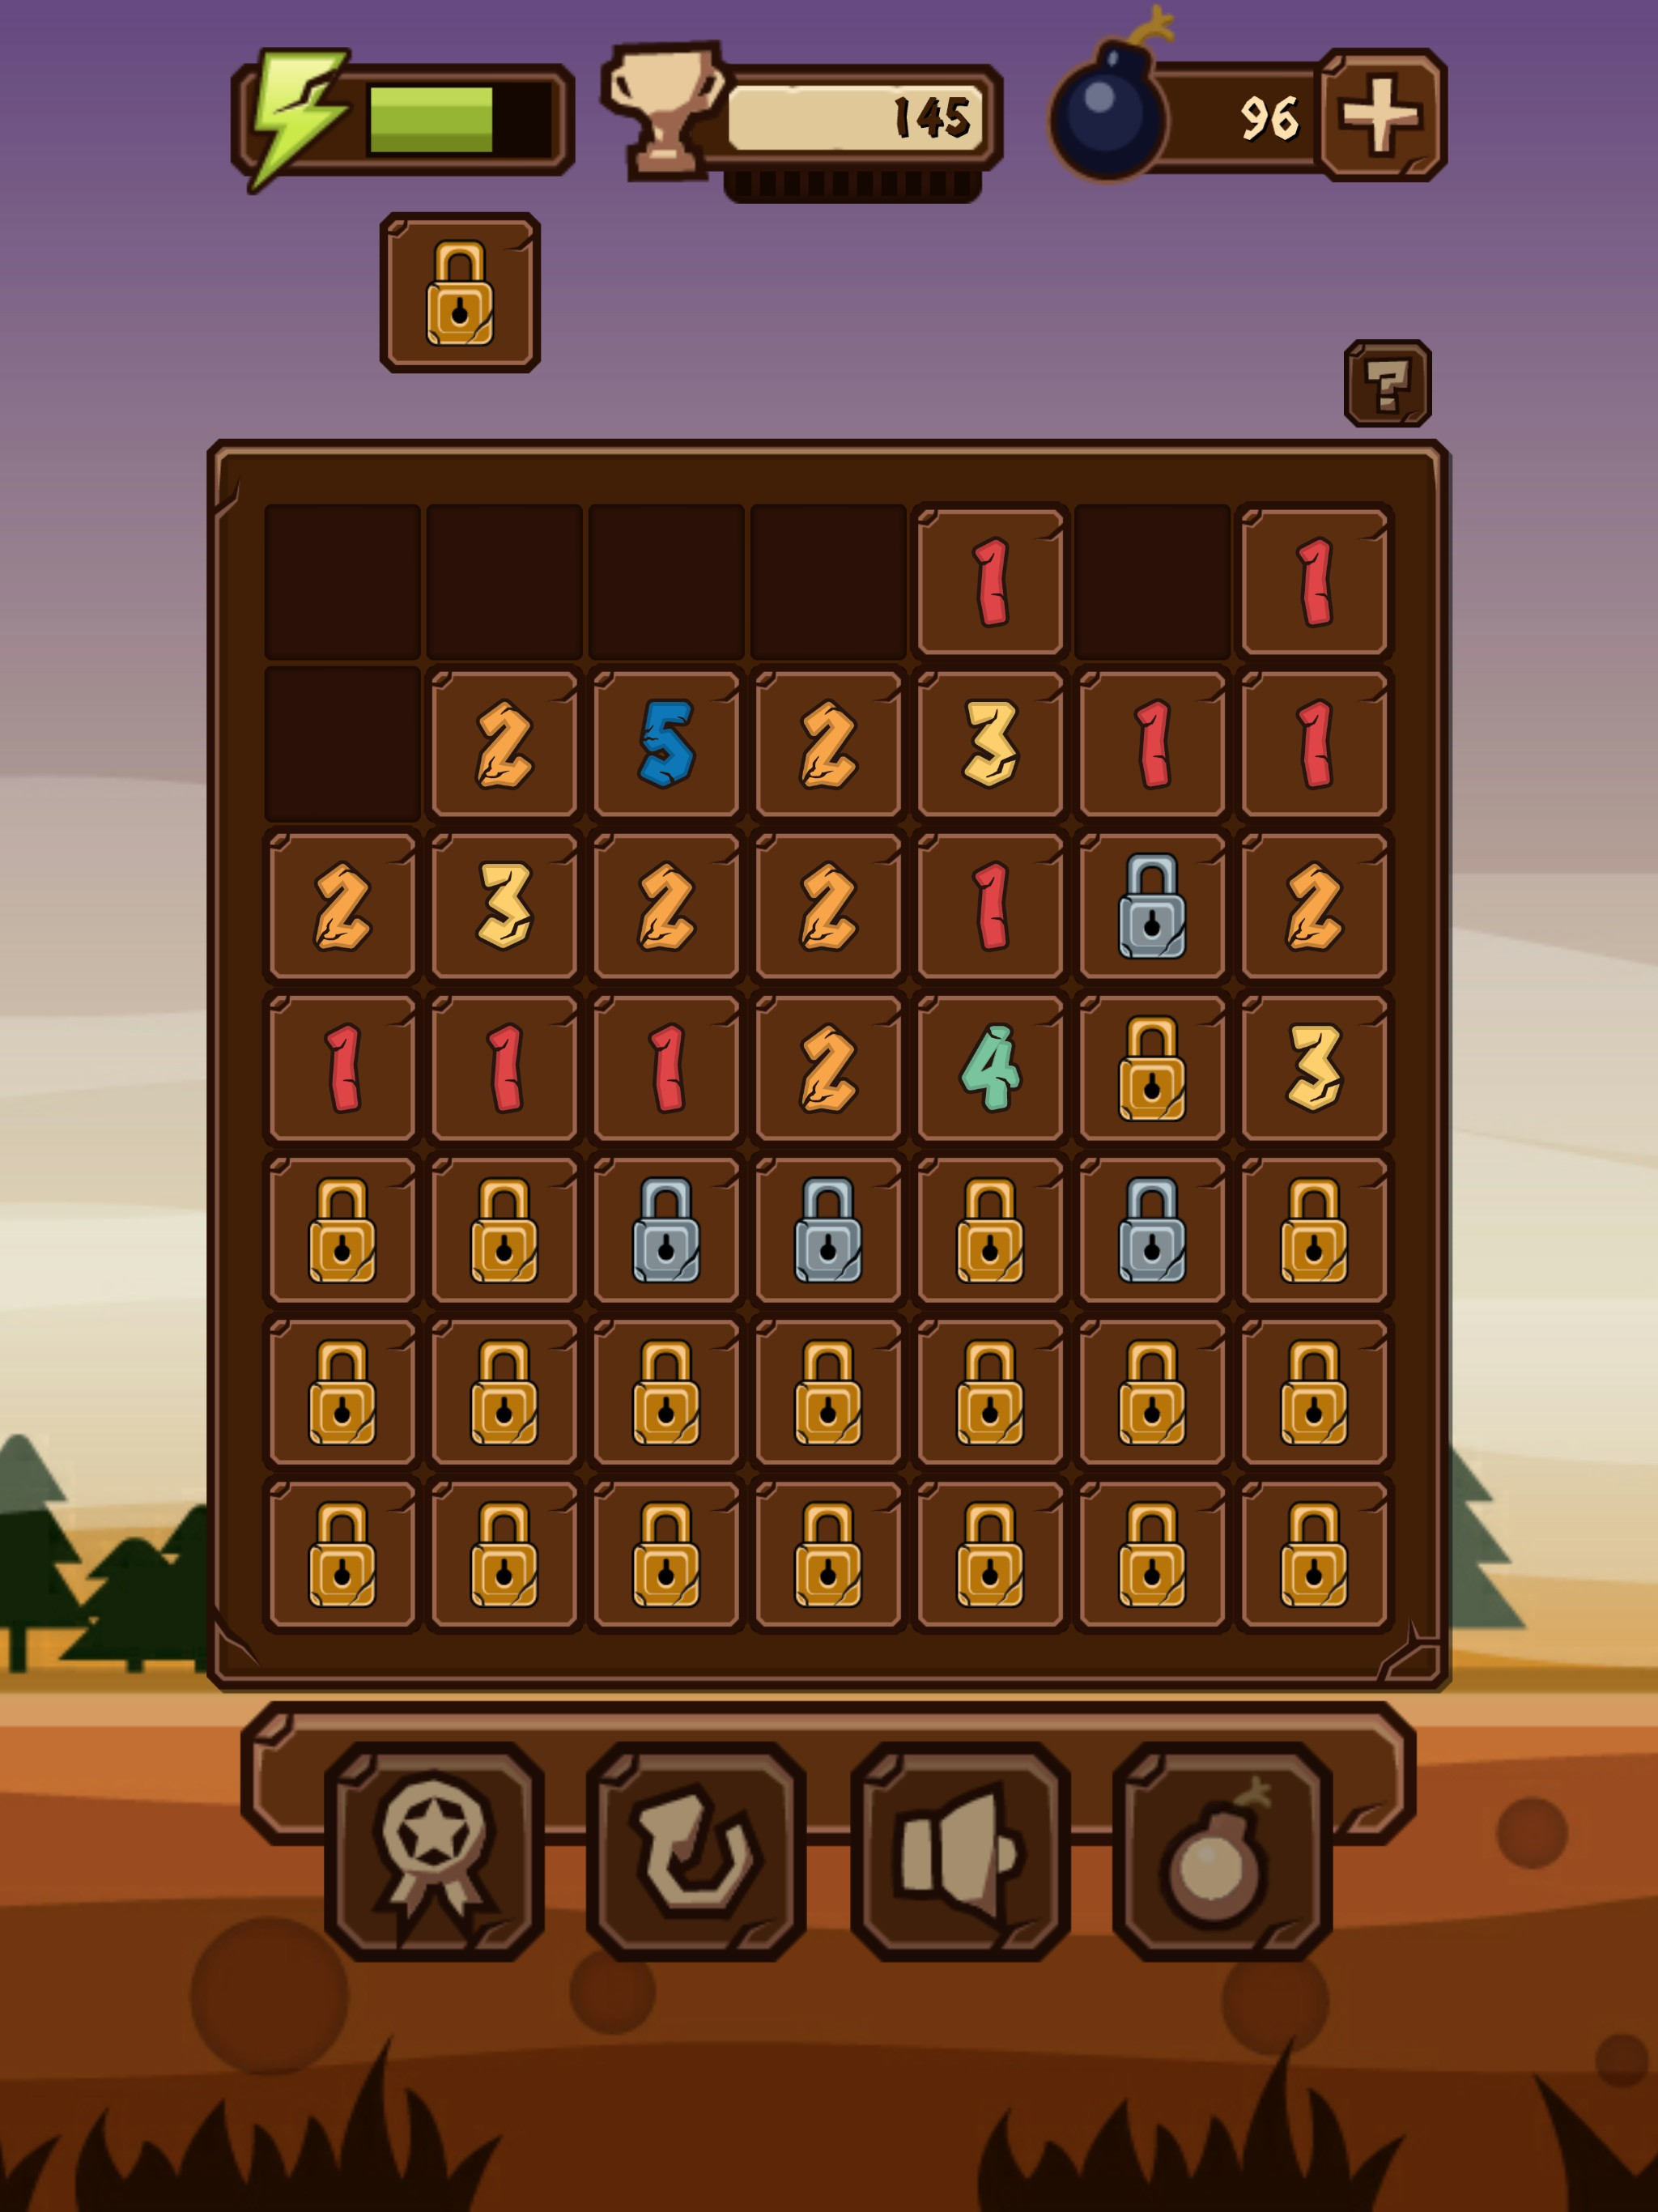 7Bricks - Complex logic puzzle game with numbers